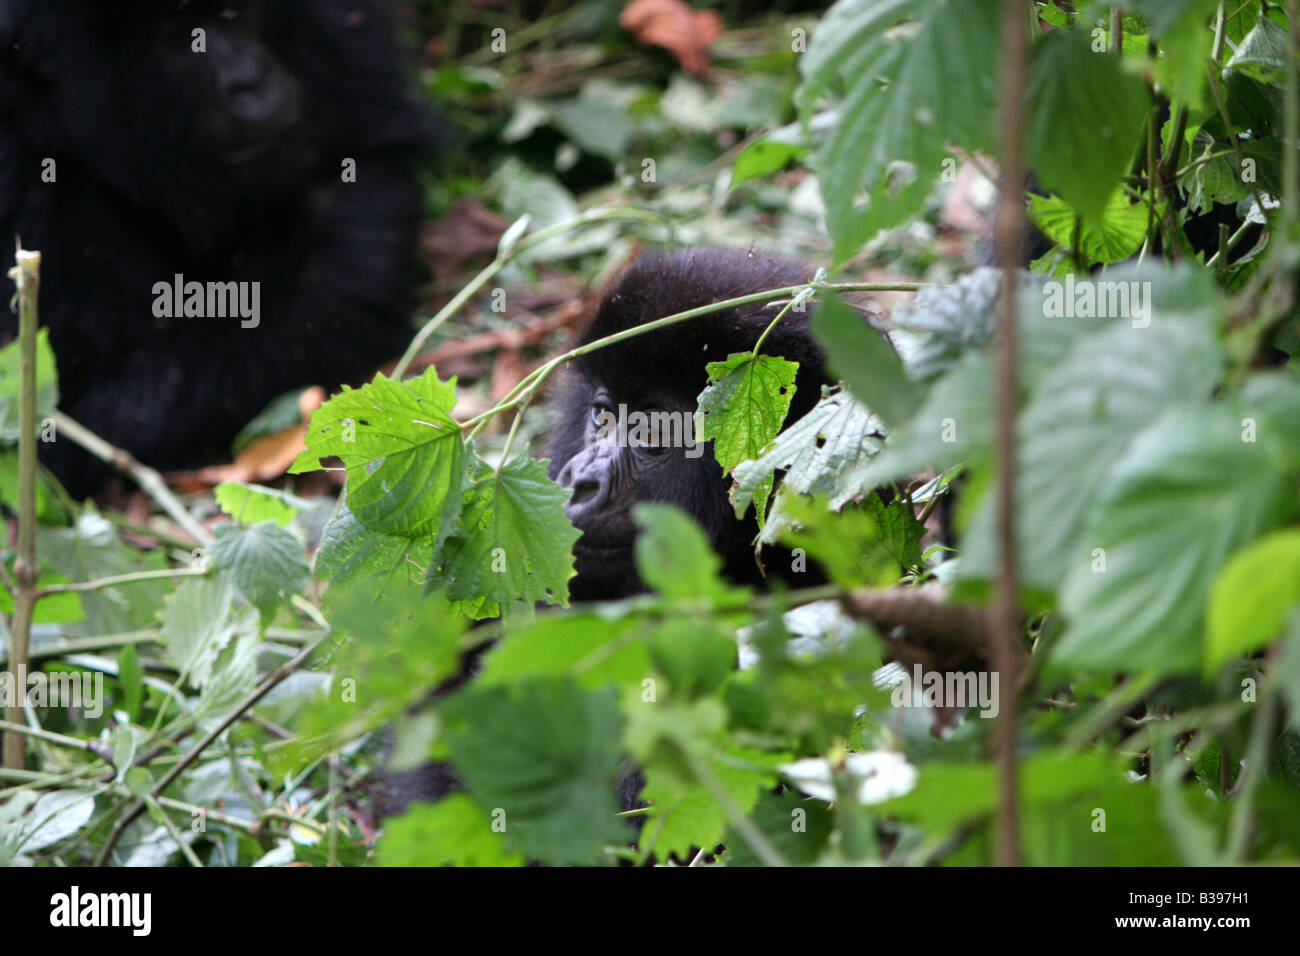 Baby Mountain gorilla of the Amahoro Group in Volcanoes National Park, Rwanda - Stock Image